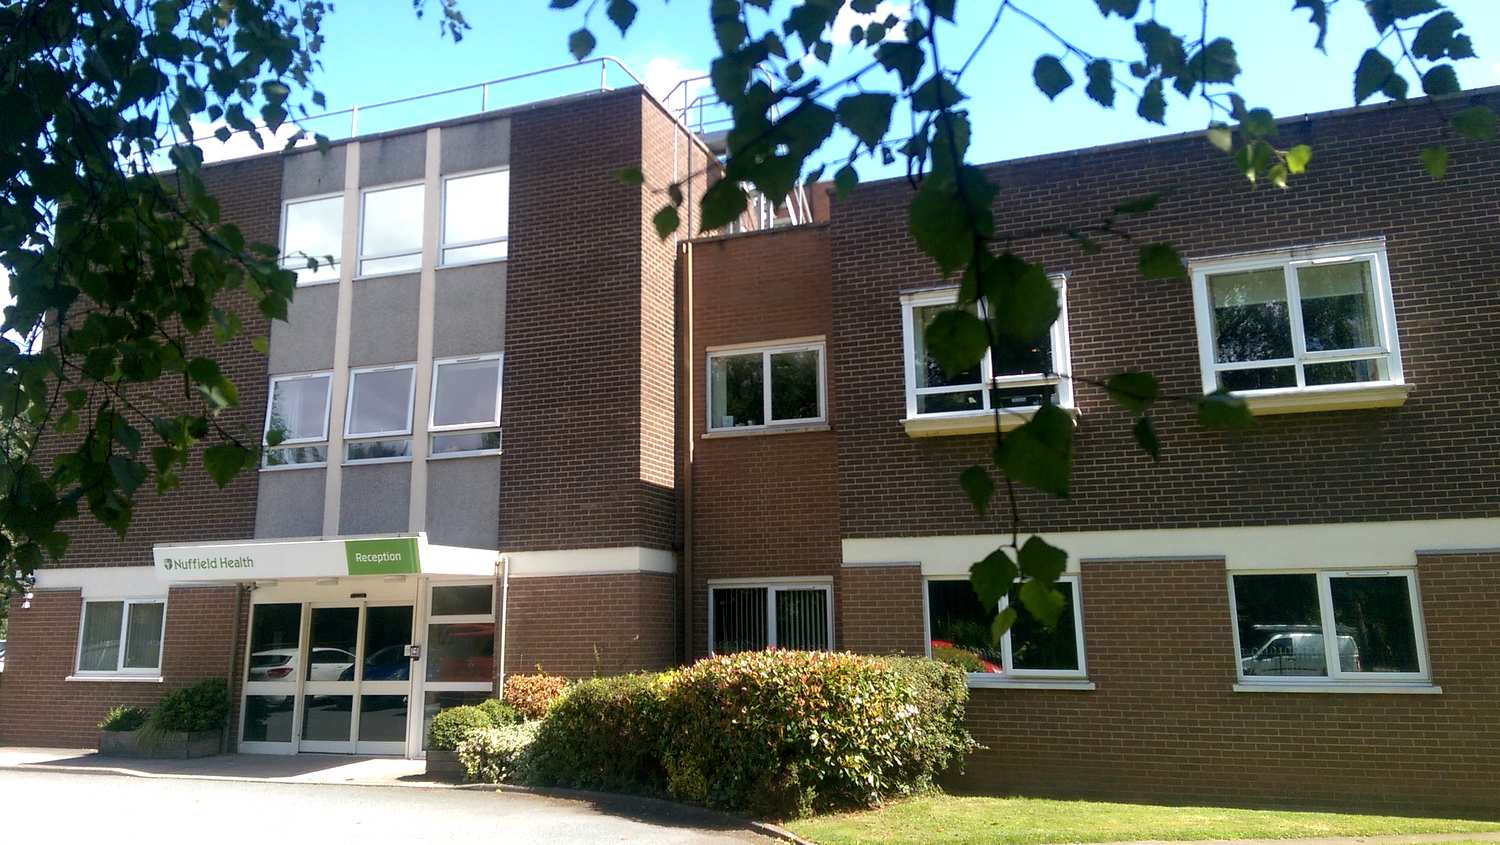 Nuffield Health Hereford Hospital